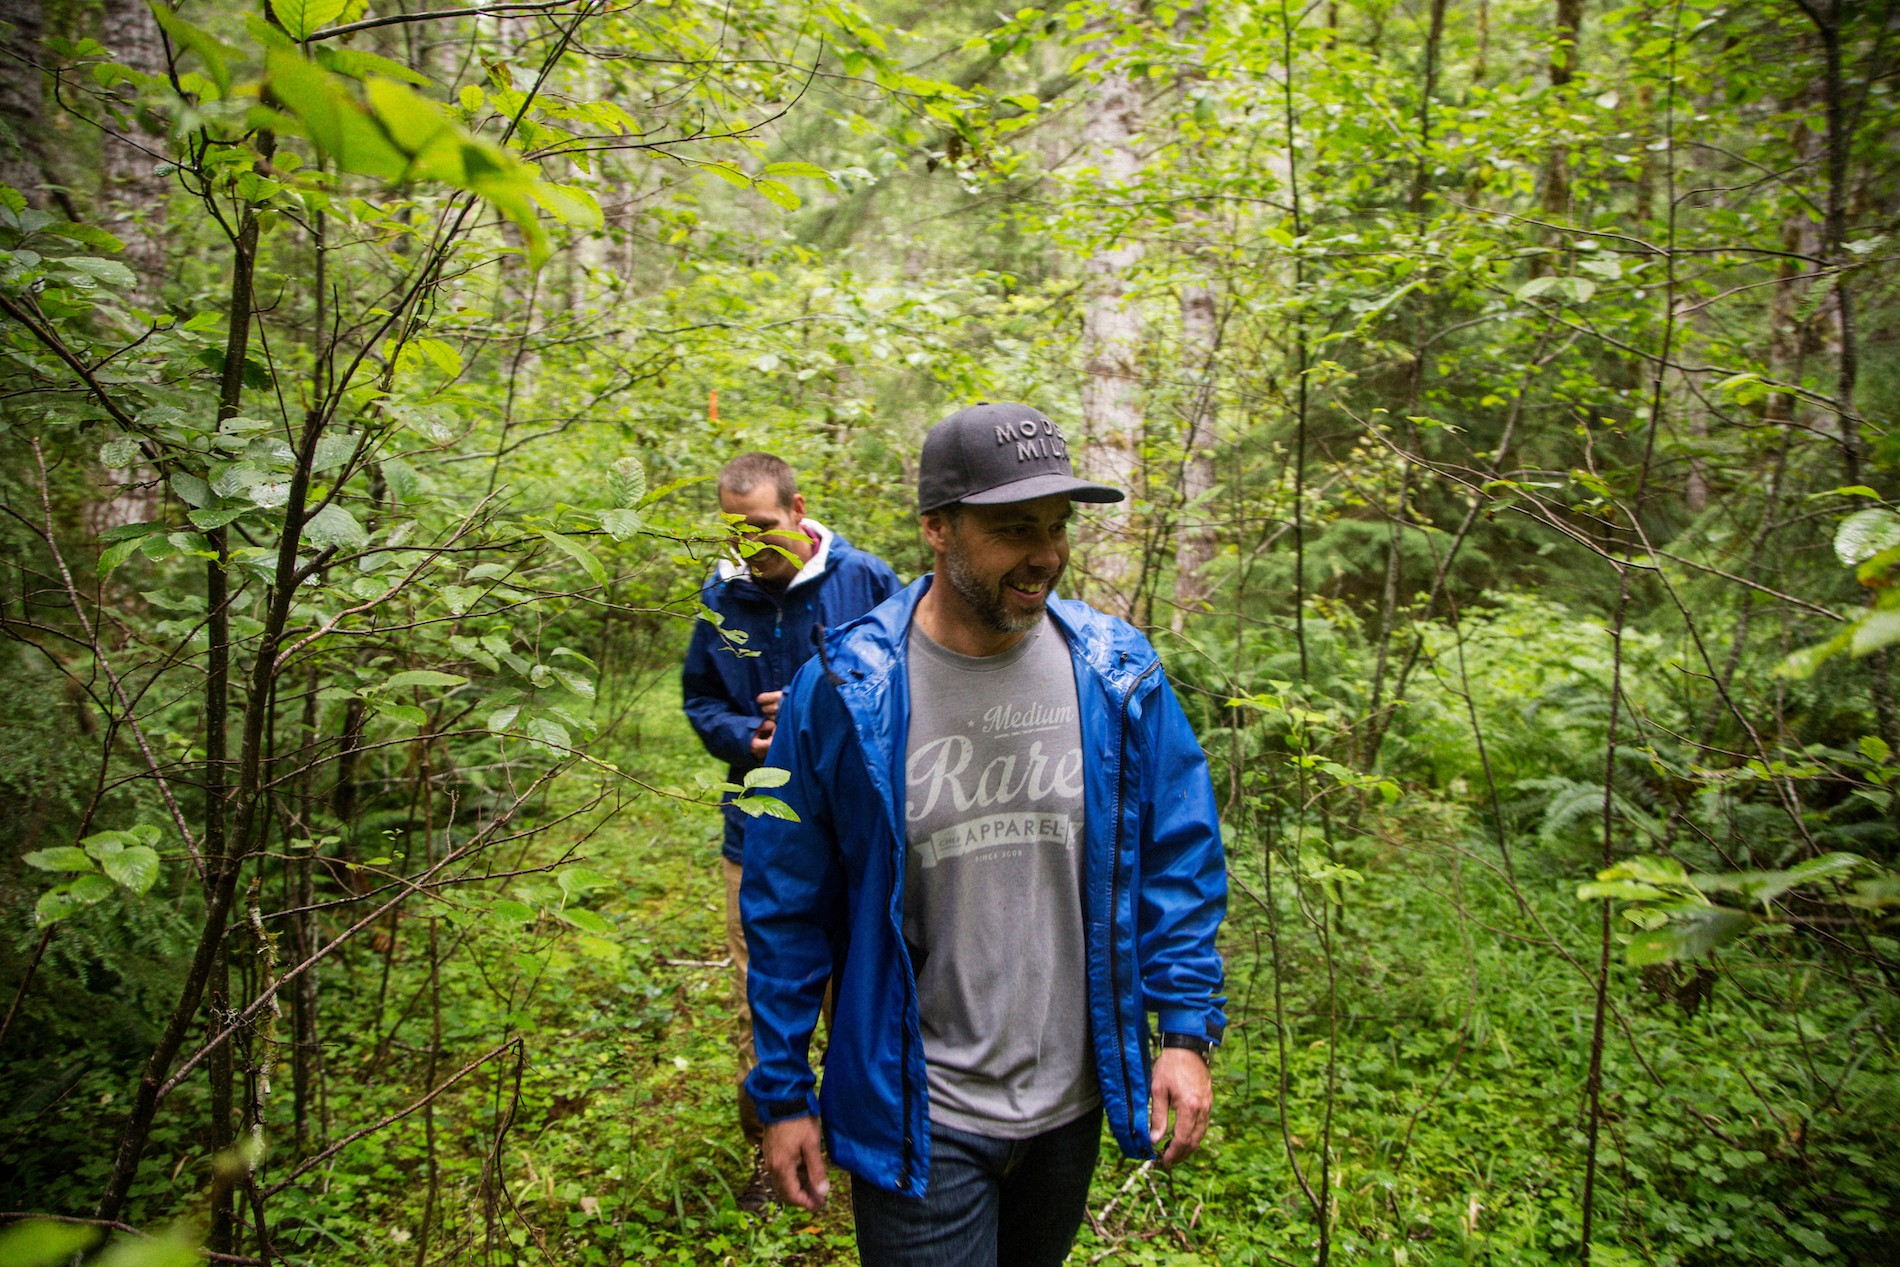 Chefs Lee Cooper and Justin Leboe foraging in a coastal forest about an hour outside of Portland. Mushrooms in Portland, Oregon. August 2016. Matt Lutton / Boreal Collective for Vice Munchies